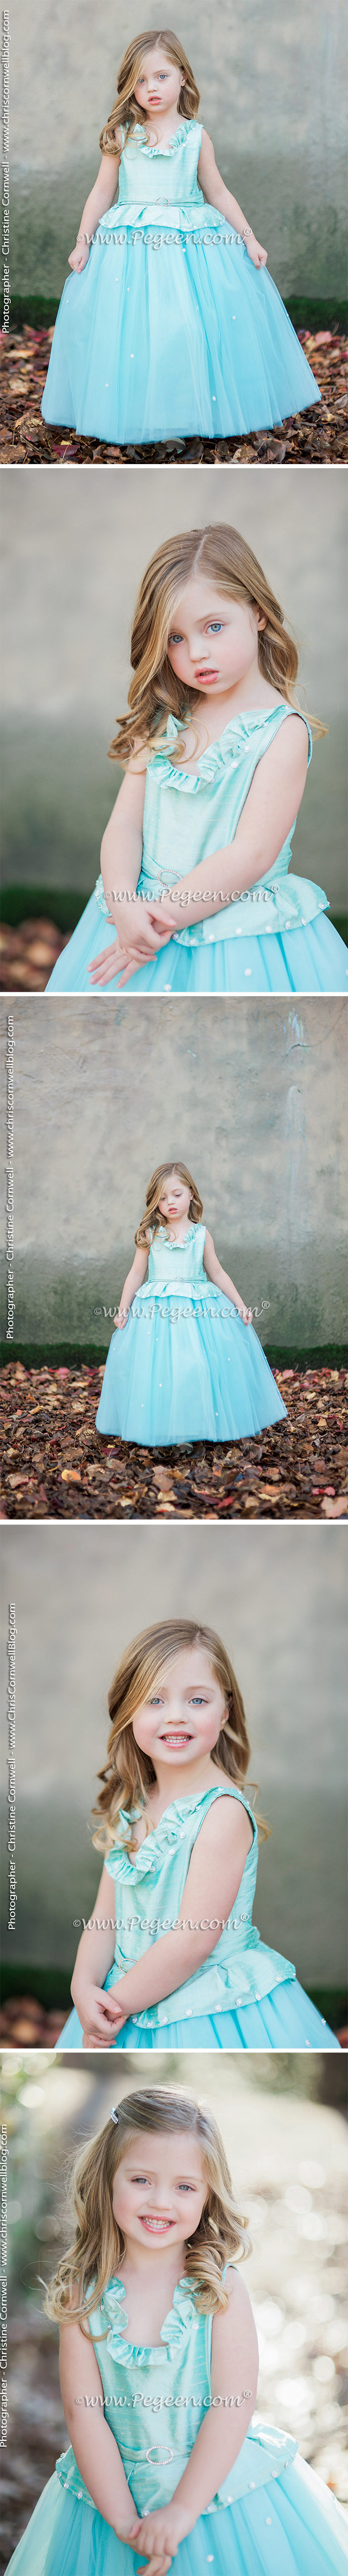 Cotillion or Couture Opal Fairy Flower Girl Dress w/Tulle, Pearled Silk Trellis, and sparkle tulle with cinderella sash